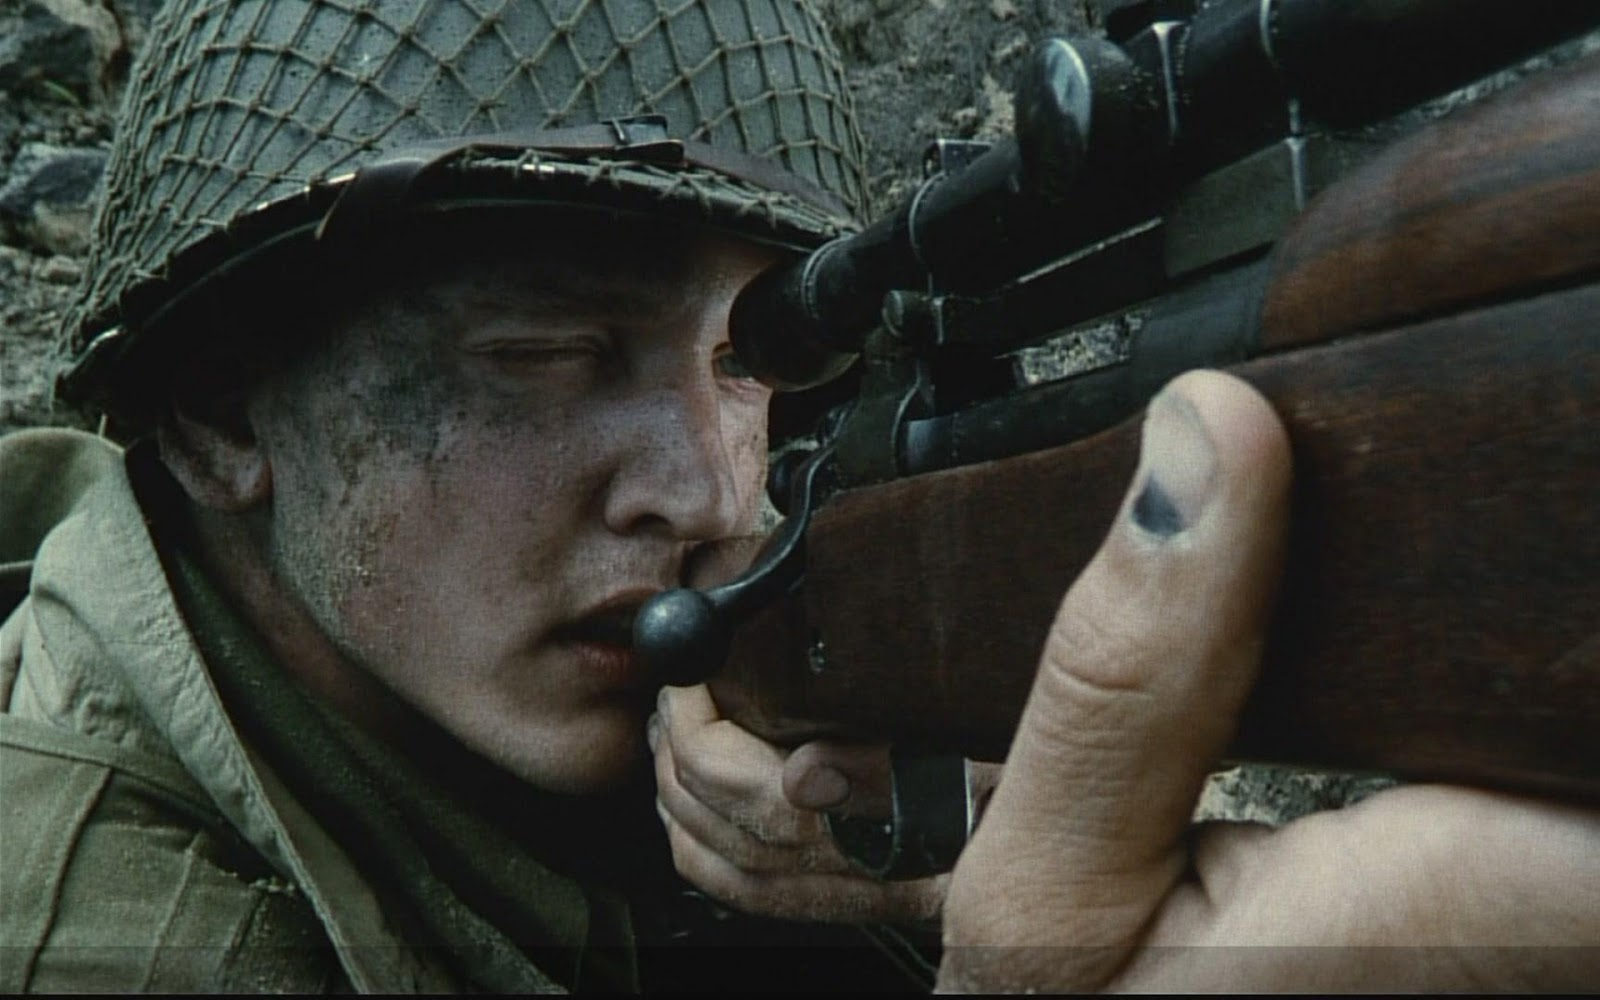 a review of the world war 2 movie saving private ryan Reviews counted: 132 saving private ryan videos 2:09 saving private ryan : trailer 1 view all videos (1) movie info steven spielberg directed this powerful, realistic re-creation of wwii's d-day invasion and the immediate aftermath the story opens with a prologue in which a veteran brings his.